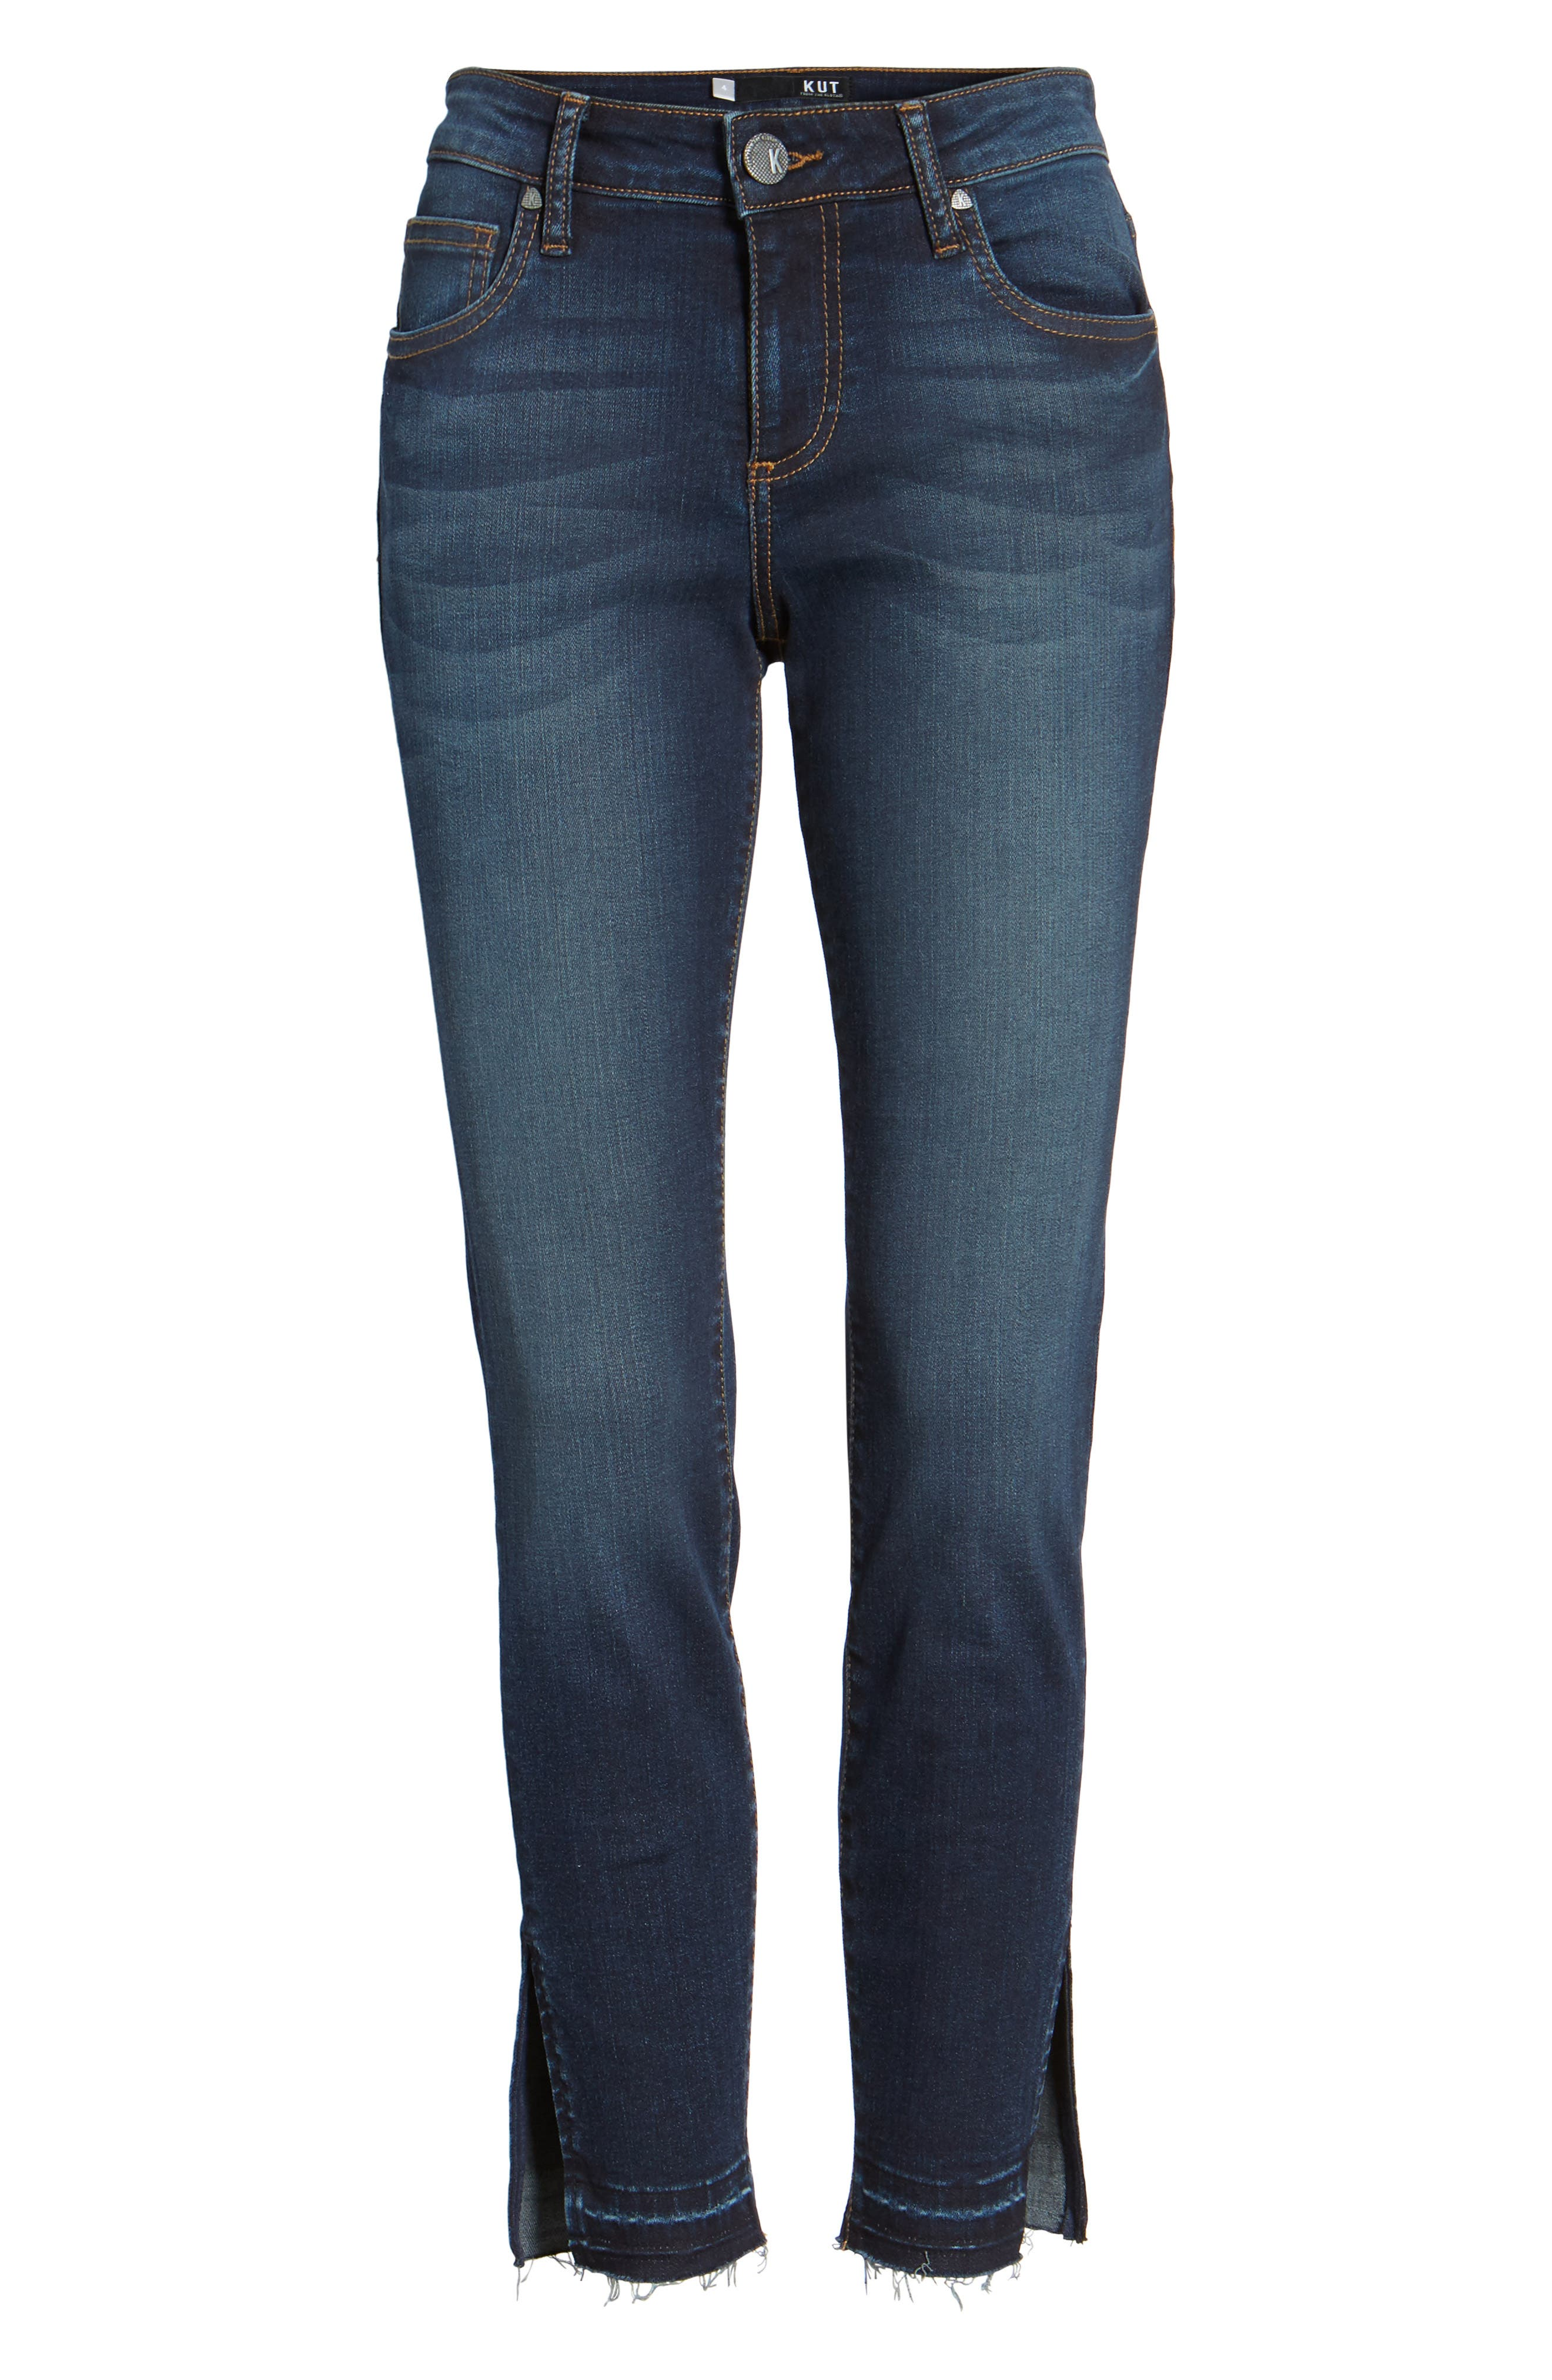 Connie Release Hem Ankle Skinny Jeans,                             Alternate thumbnail 6, color,                             431